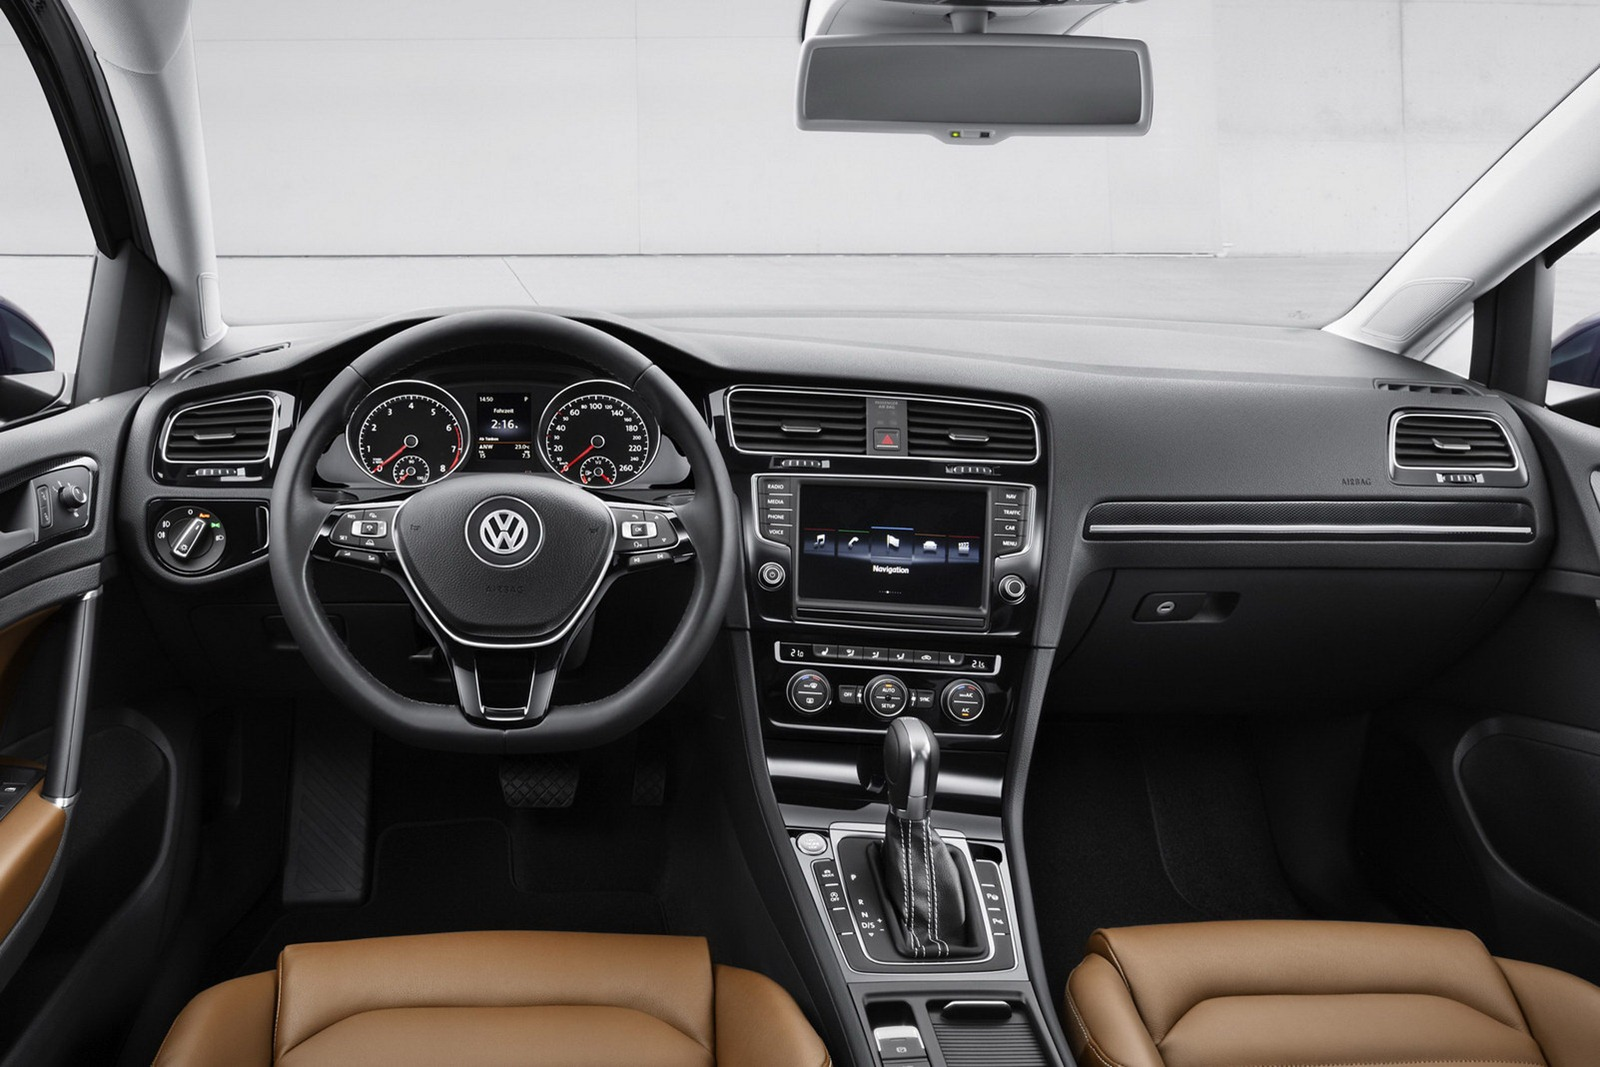 2013 volkswagen golf mk7 interior for Interior volkswagen golf